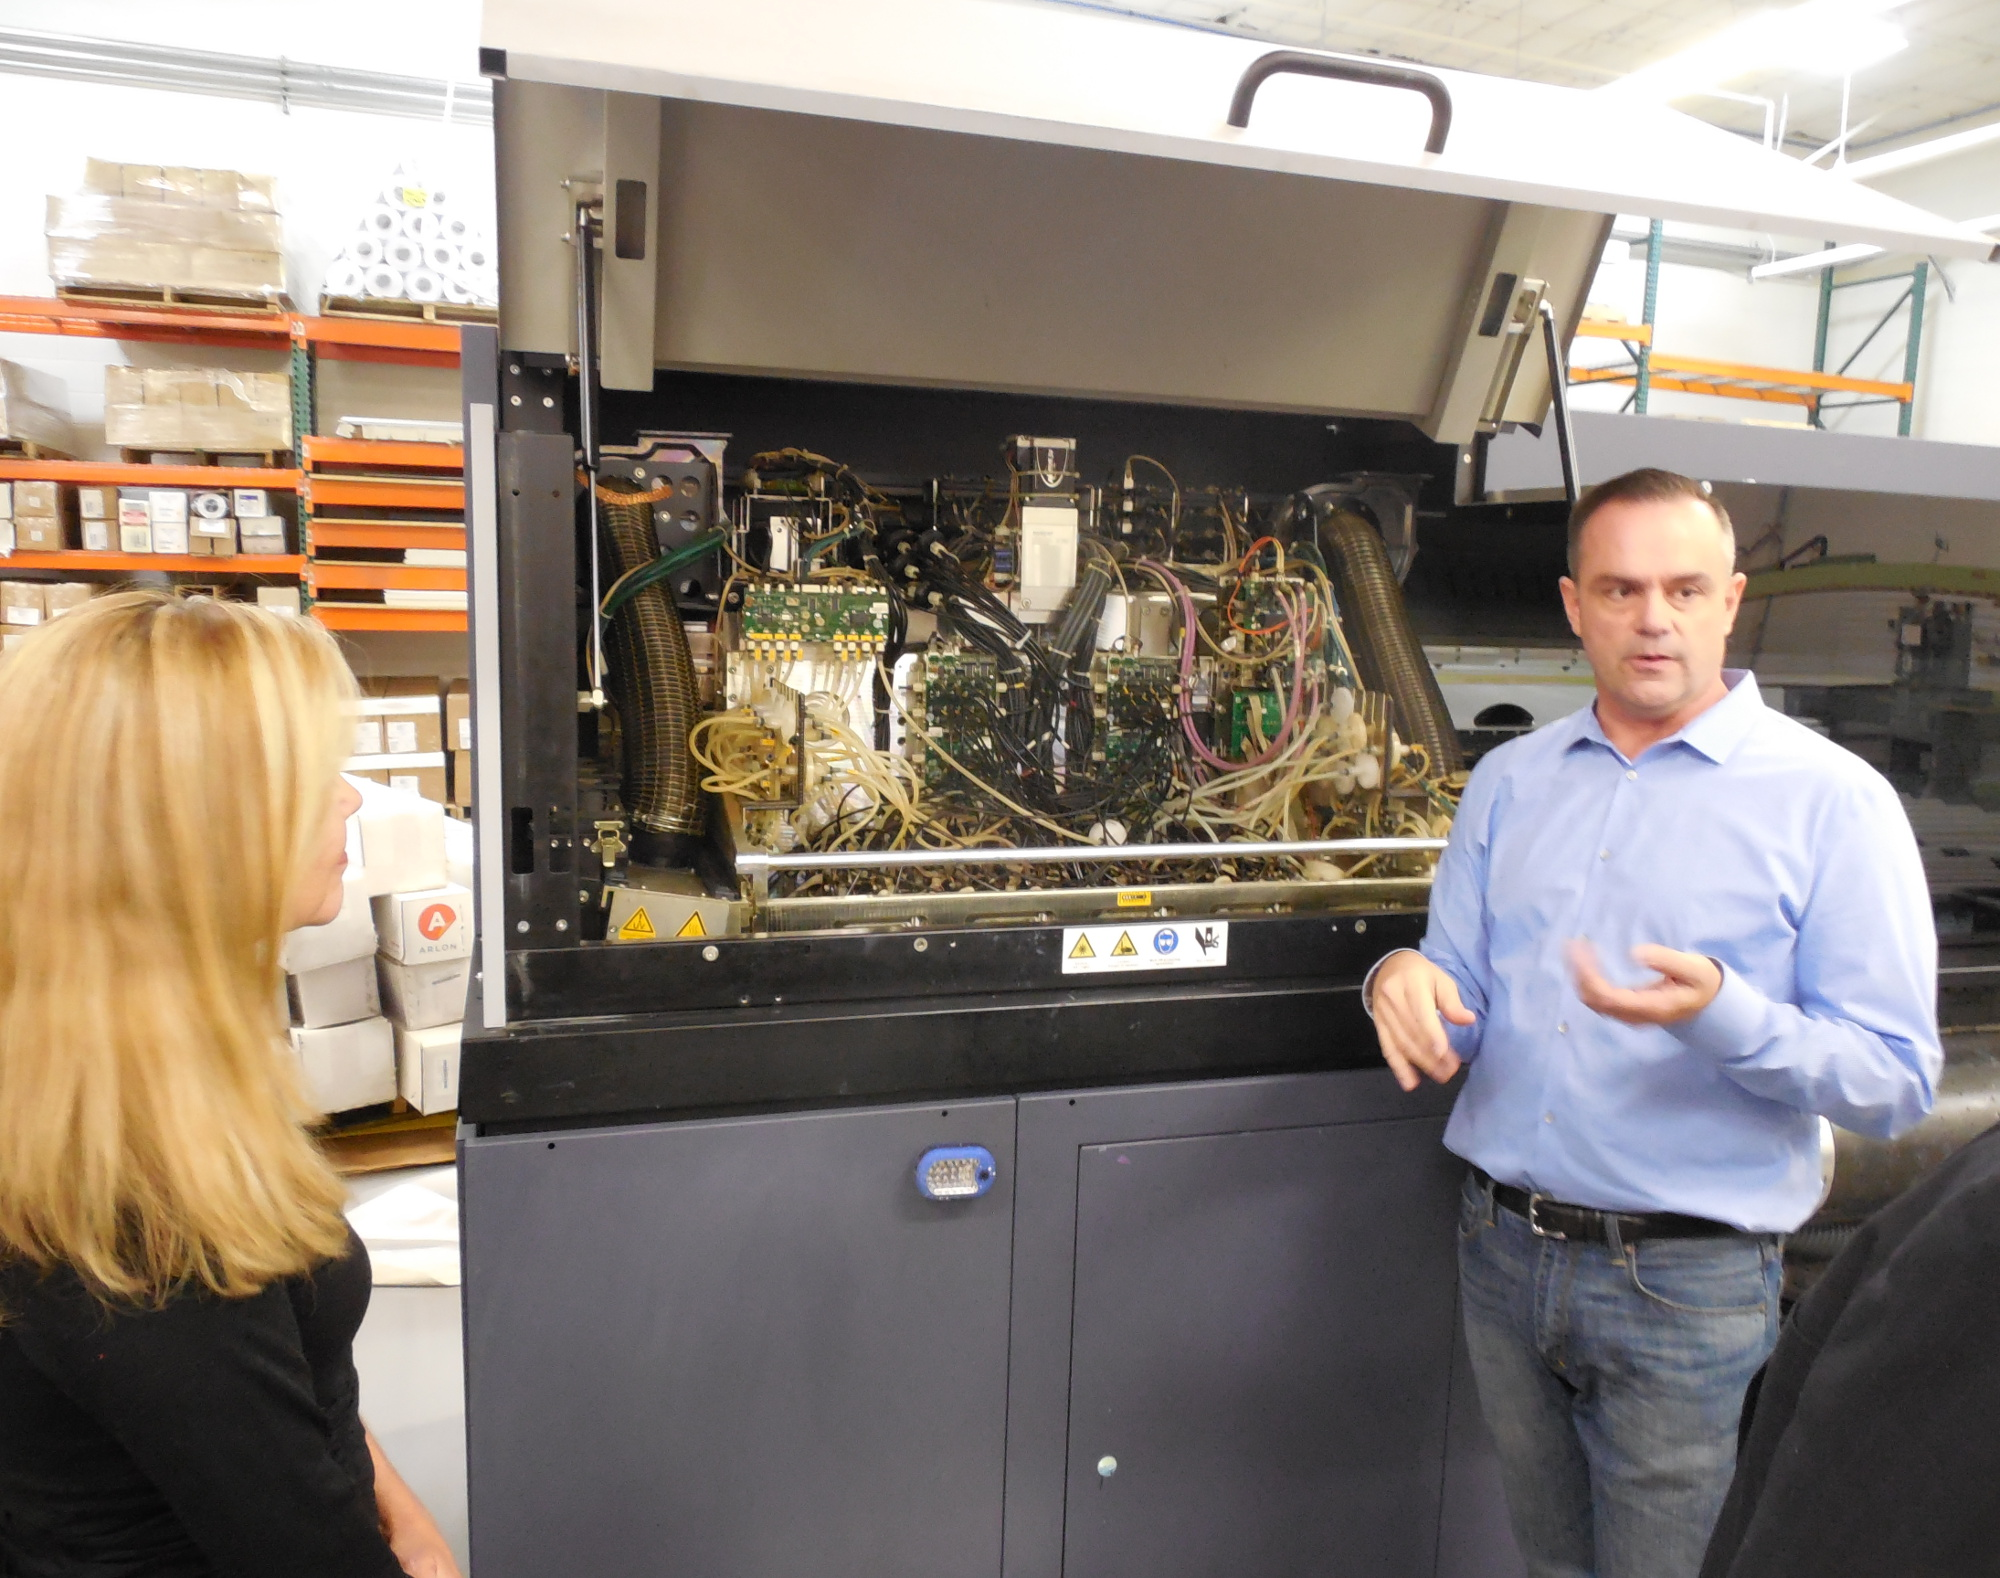 Josh Bevans shows off a high-tech printing press to Small Business Administration Regional Director Betsy Marky during a tour of Design to Print, St. George, Utah, Nov. 17, 2016 | Photo by Julie Applegate, St. George News